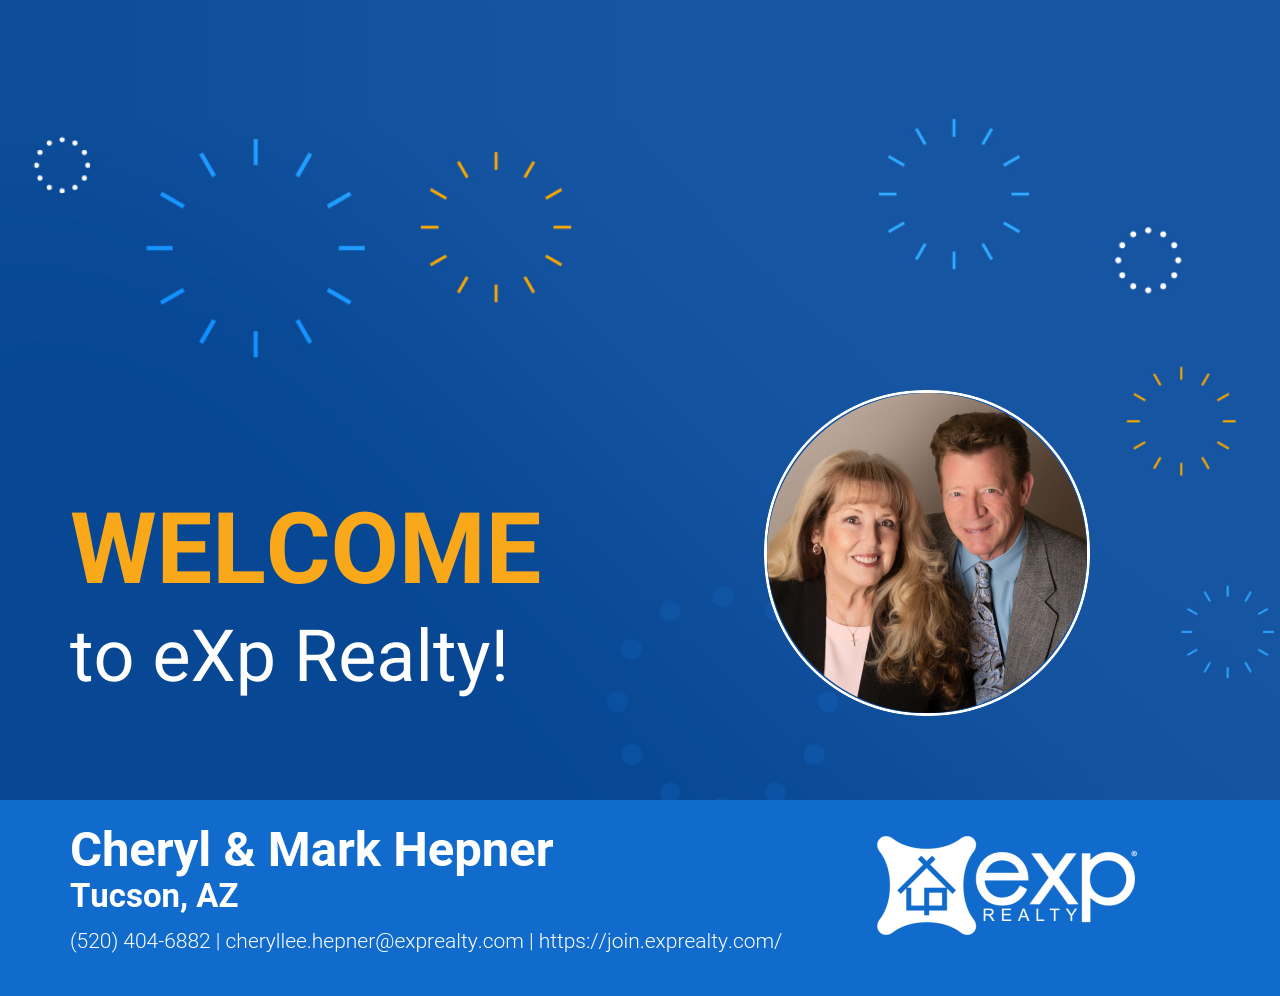 Welcome to eXp Realty Cheryl & Mark Hepner!